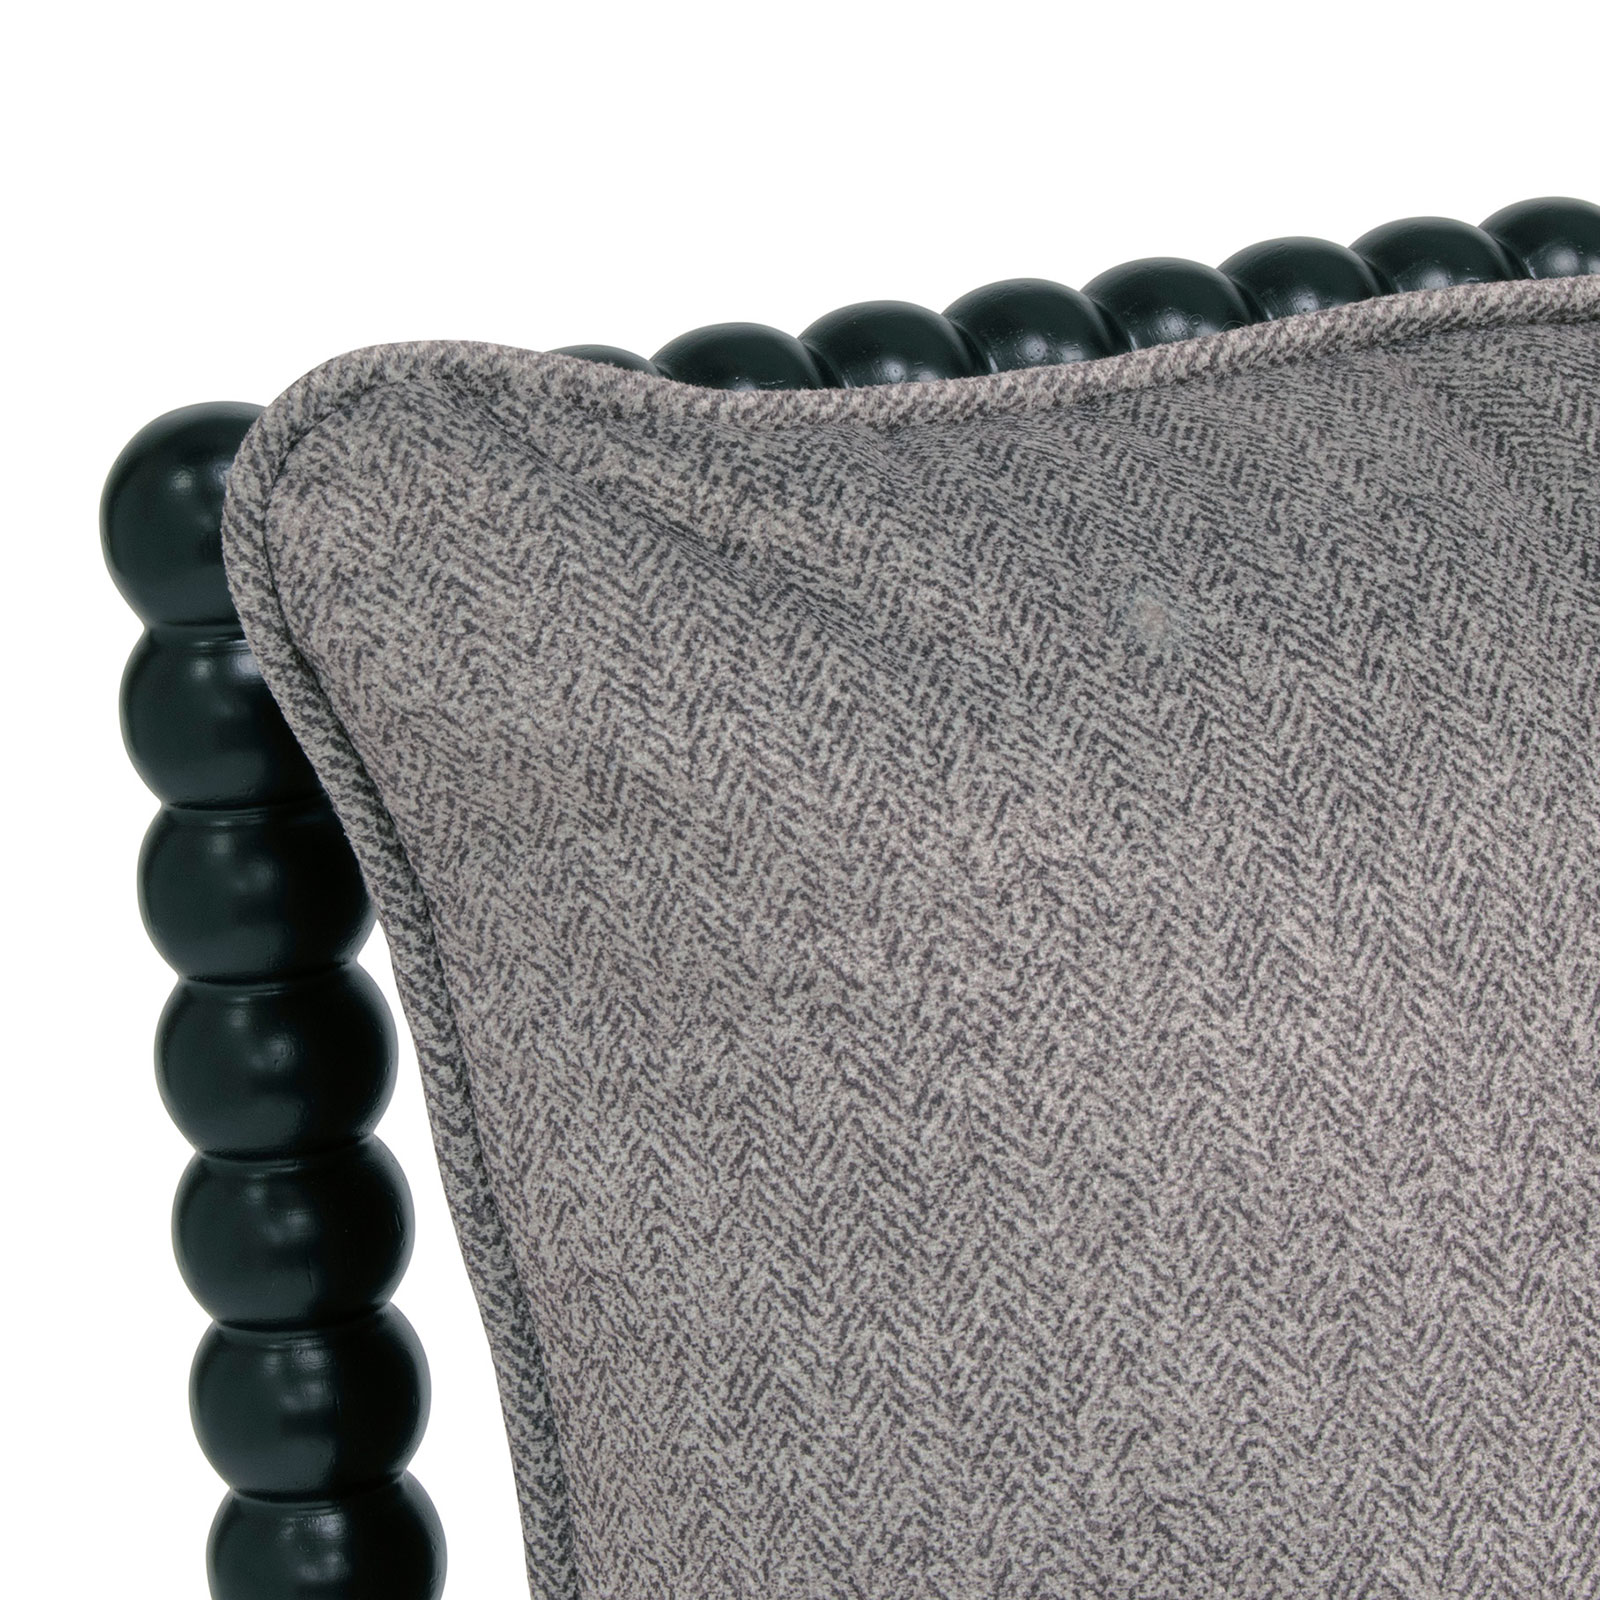 72041-Colonnade-Spindle-Chair-detail1